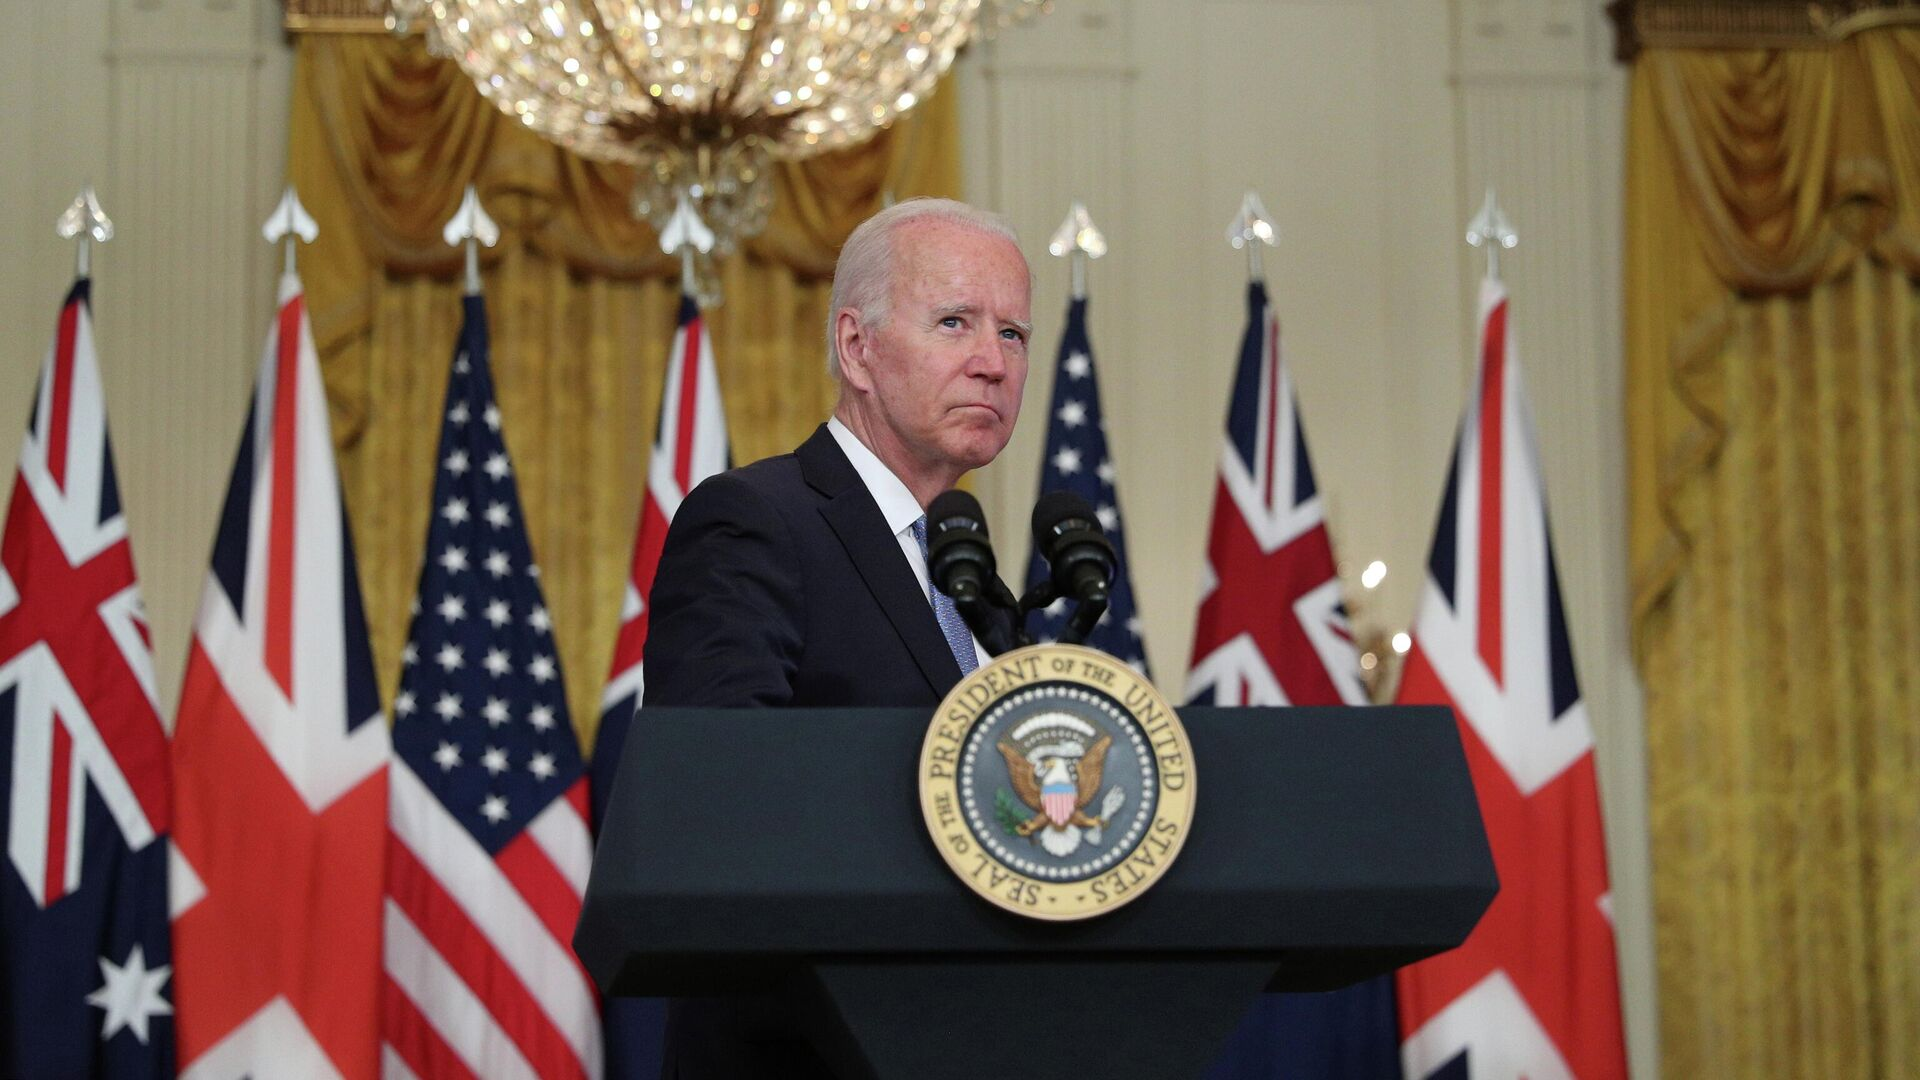 U.S. President Joe Biden delivers remarks on a National Security Initiative virtually with Australian Prime Minister Scott Morrison and British Prime Minister Boris Johnson, both not pictured, inside the East Room at the White House in Washington, U.S., September 15, 2021 - Sputnik International, 1920, 16.09.2021